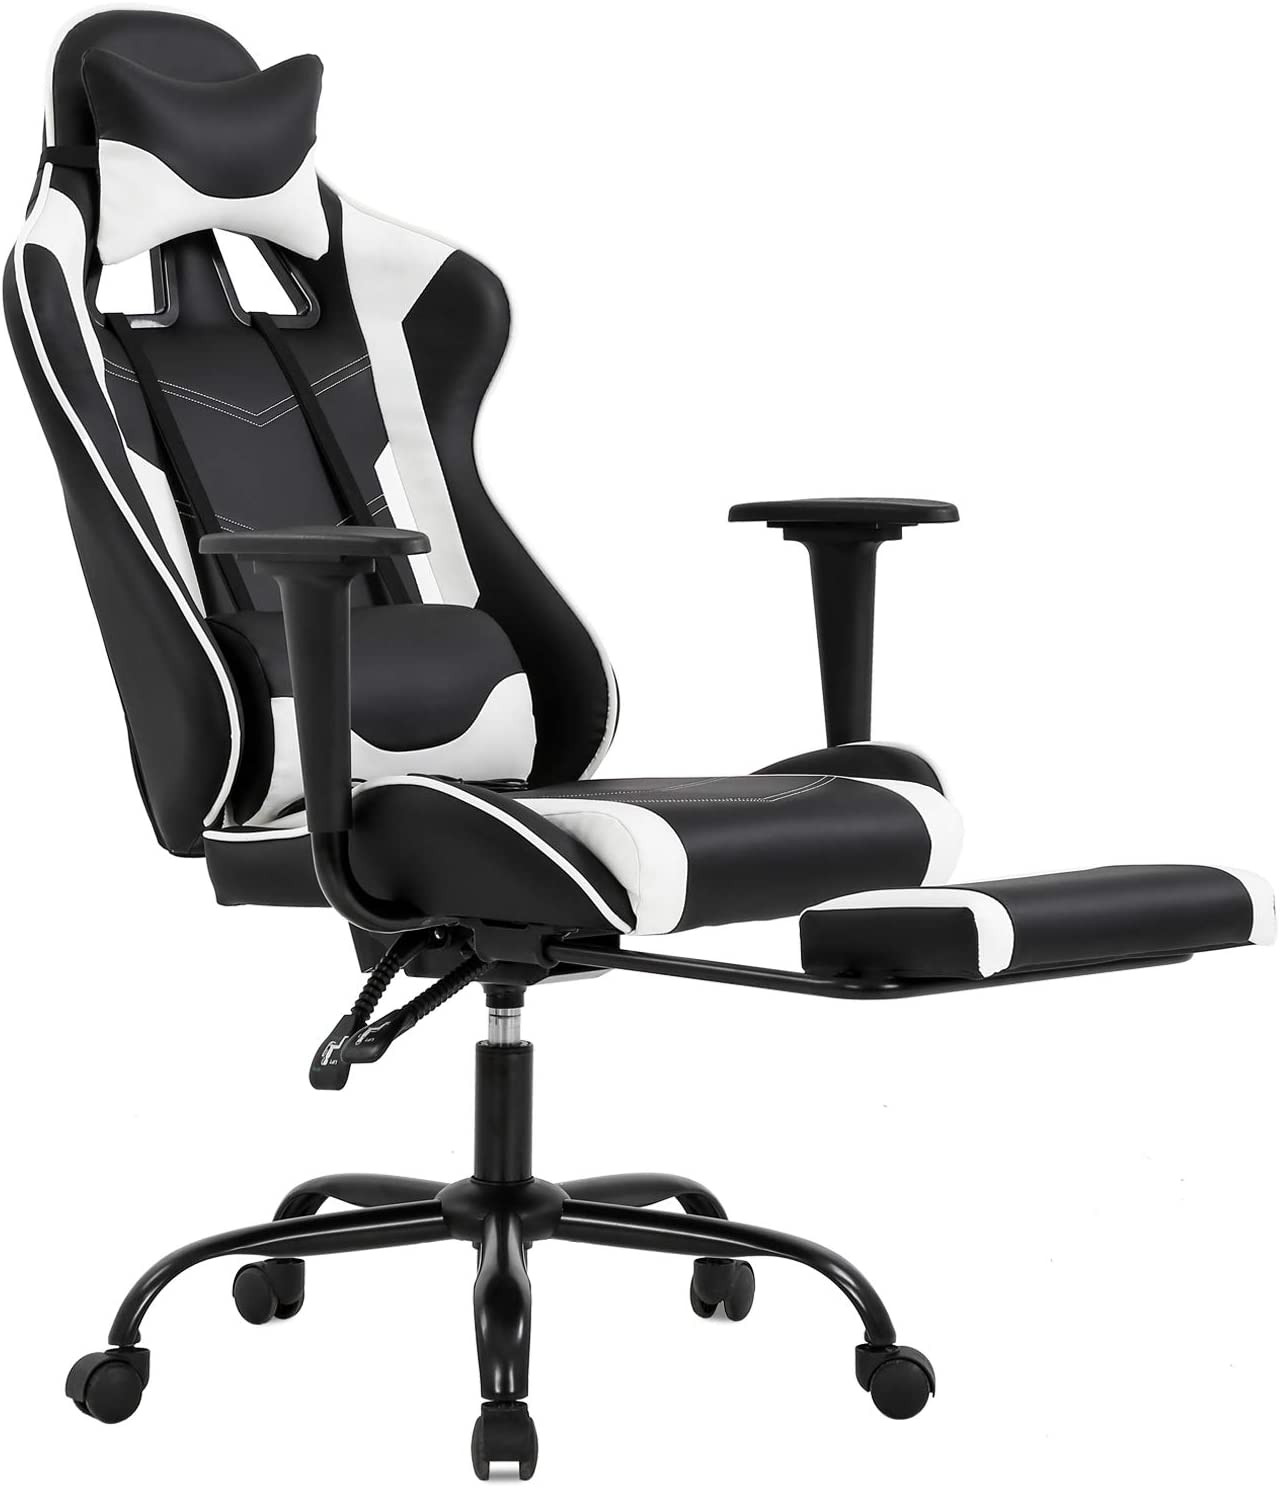 Top 10 Best Gaming Chair Black Friday 2020 Deals - Max Discount 5